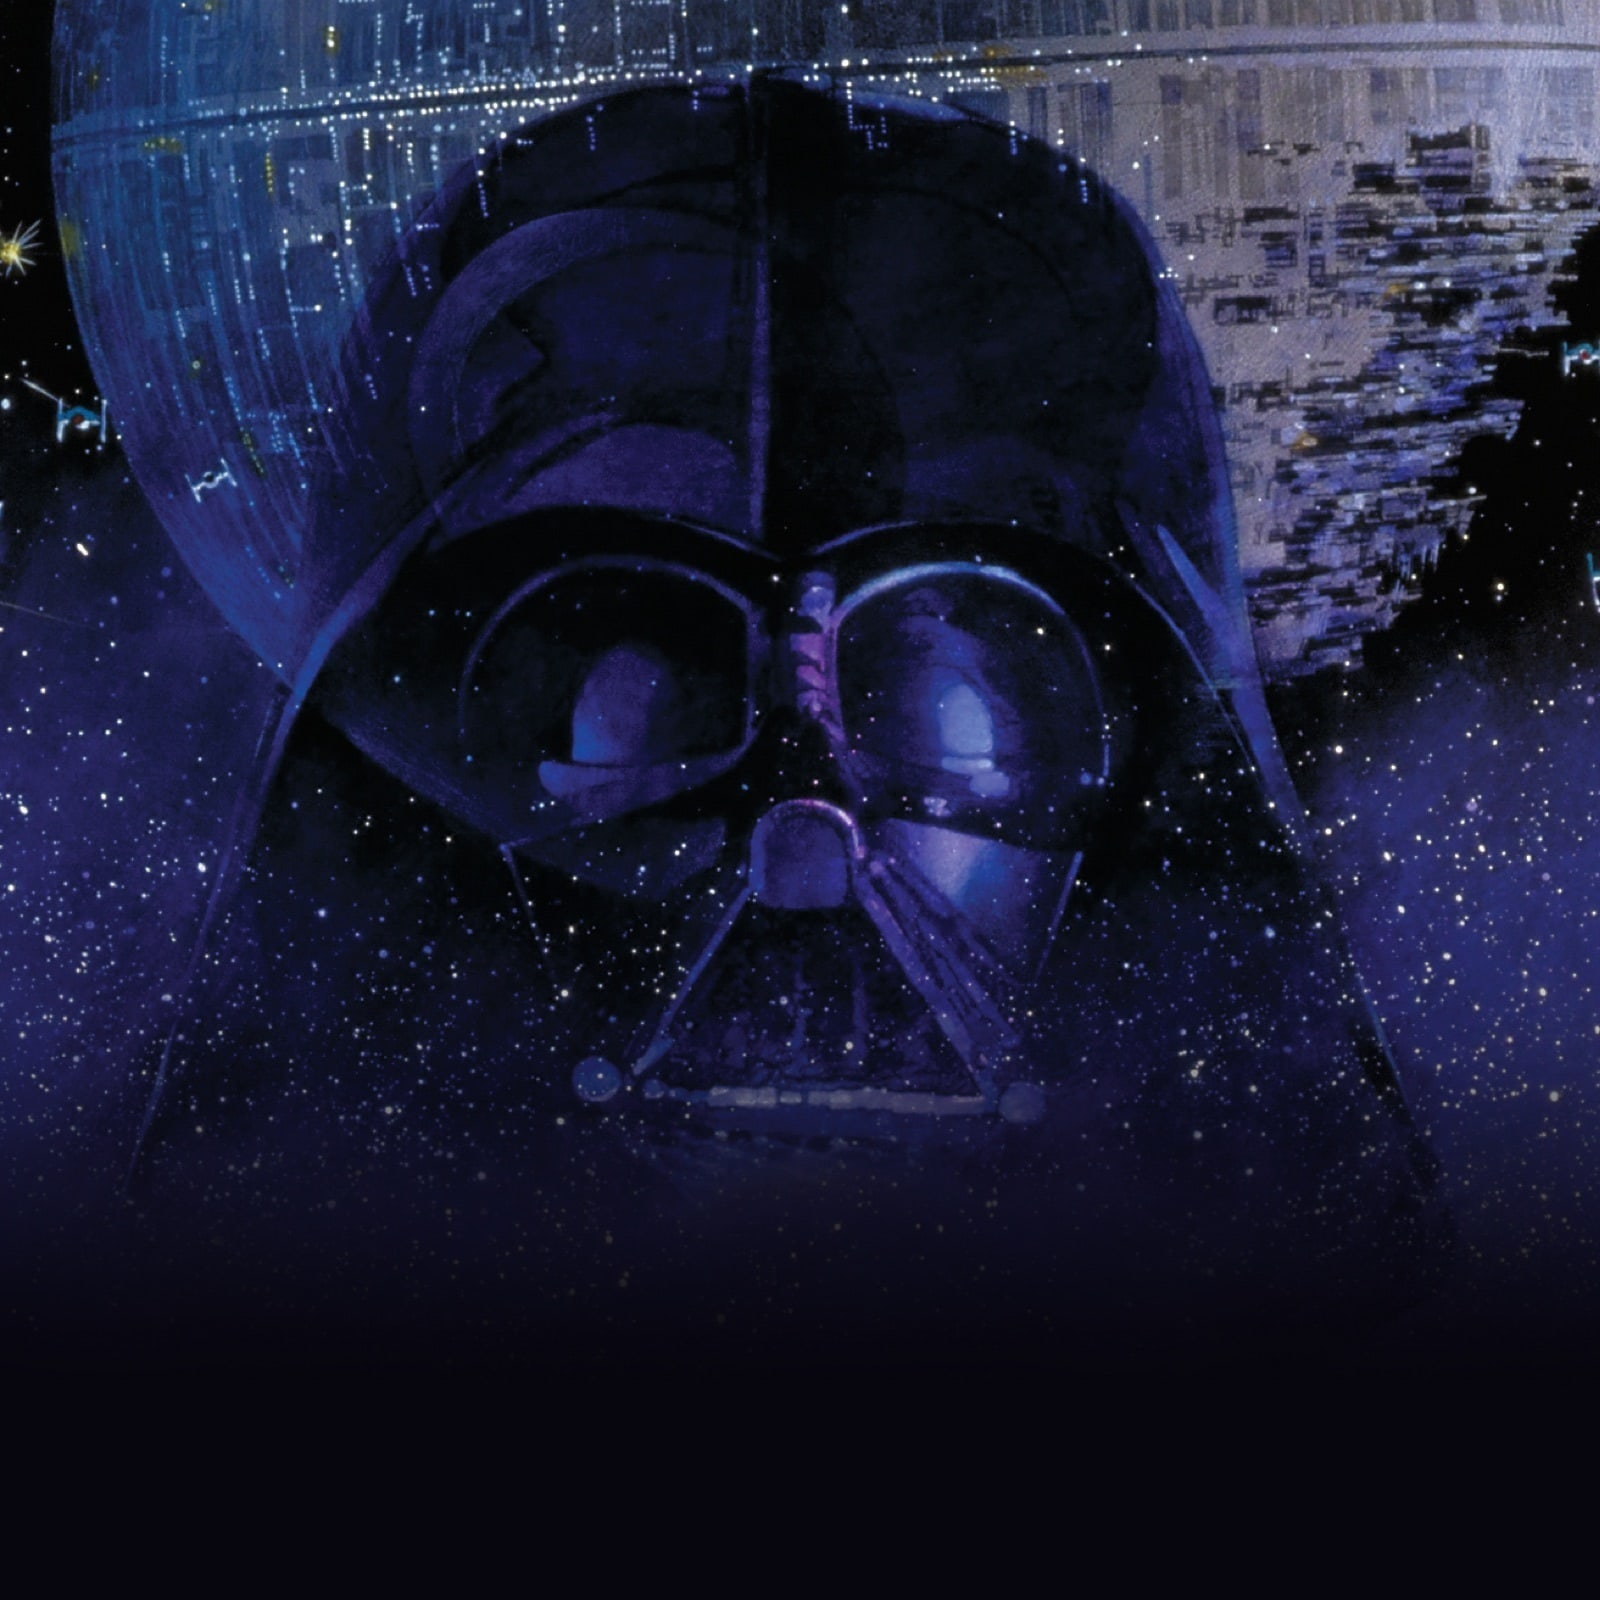 Image of Darth Vader's face with space behind him